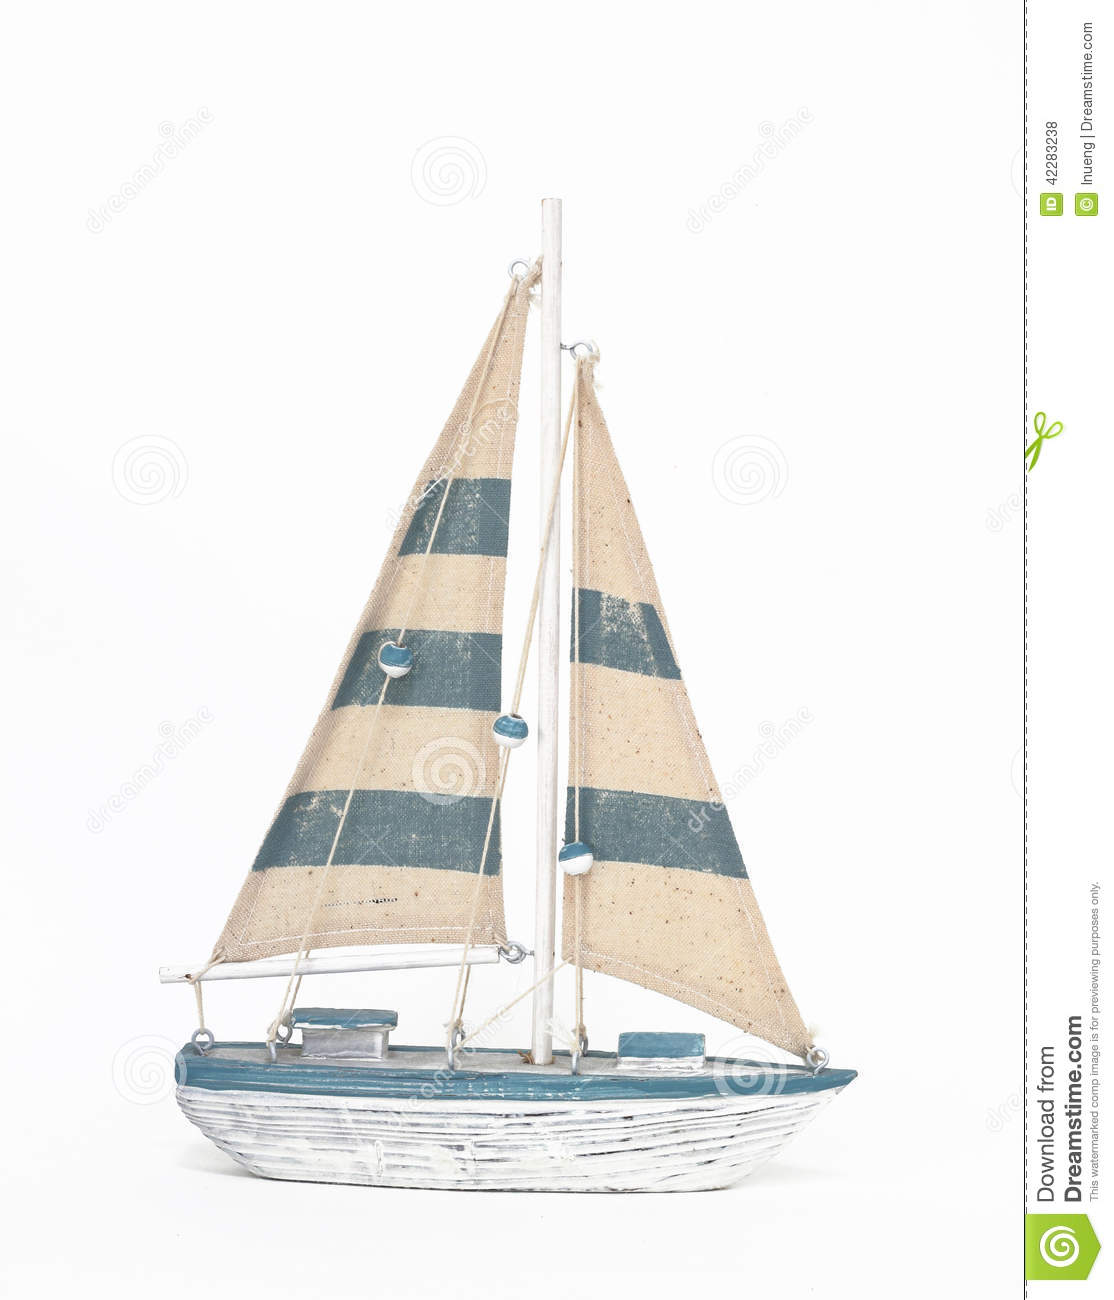 Wooden Toy Sailing Boat On White Background Stock Photo - Image of souvenir, object: 42283238